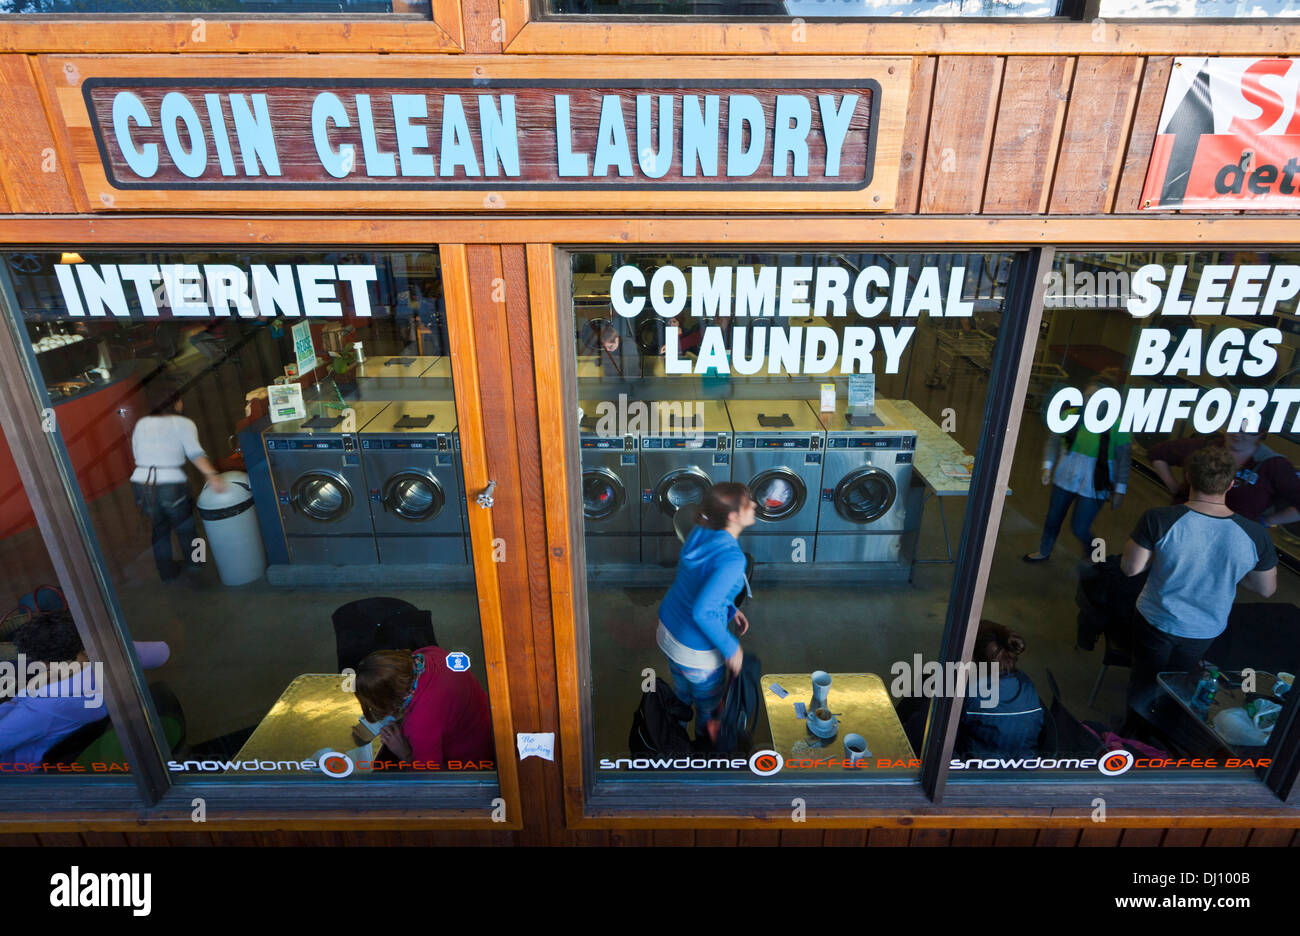 People in the Coin operated laundry laundrette laundromat doing their laundry in Jasper Alberta Canada - Stock Image